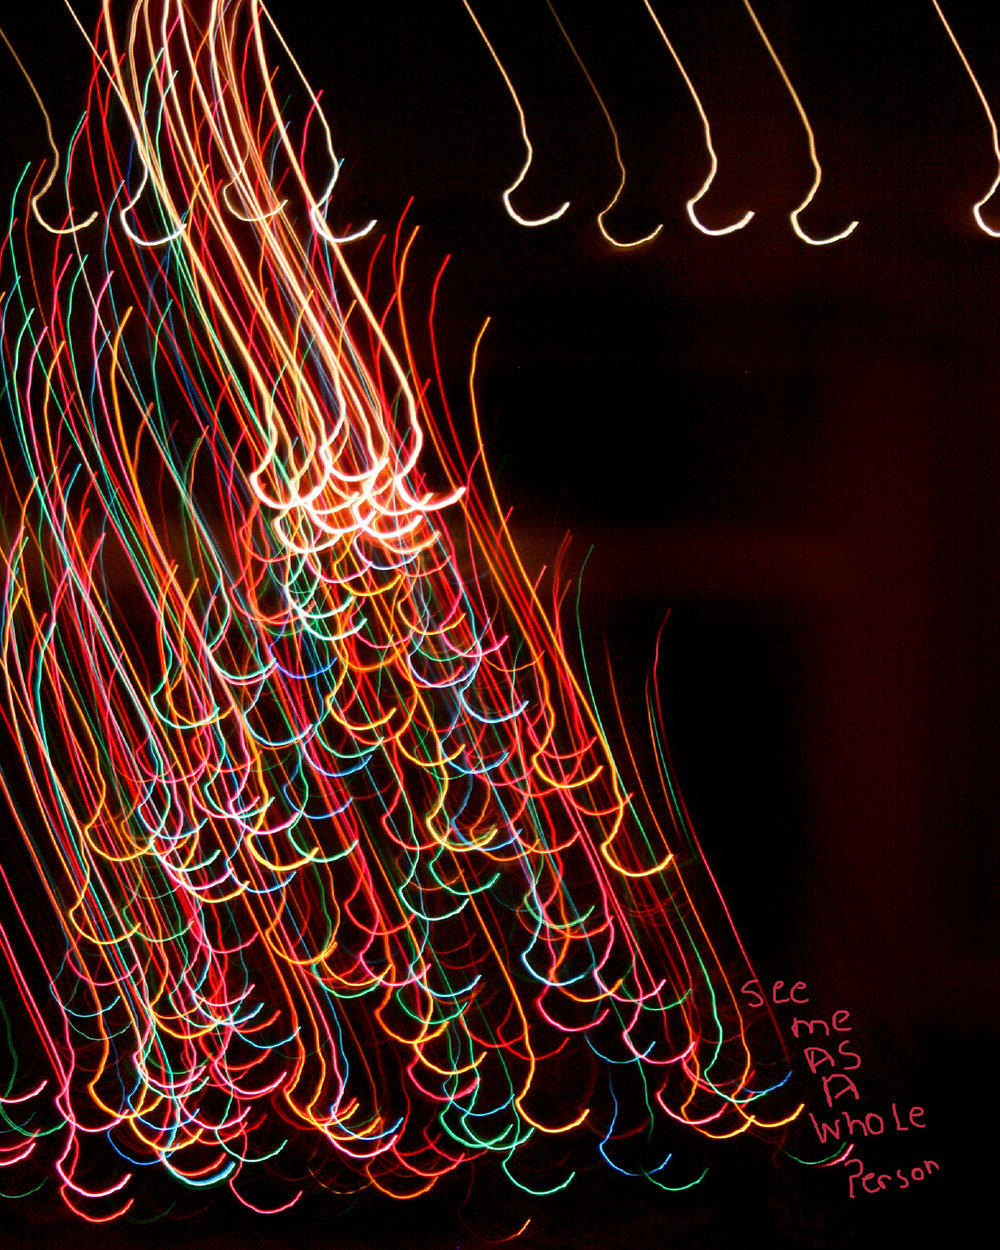 These photographs were created at night using a slow shutter speed and colored lights. Afterward, I looked at each abstract image and felt that they described how I, as a differently abled person, feel sometimes. The darkness that surrounds the light paintings merely acts to show the beauty of the colors and shapes. These photographs represent the positivity of being differently abled and the hope that the world would accept me as I am.  Title: See Me AS I Really Am  Medium: Photography/Digital Arts  Size: 8 x 10  Price $200  For sales inquires, please contact the artist directly at  www.laurenmosco.com